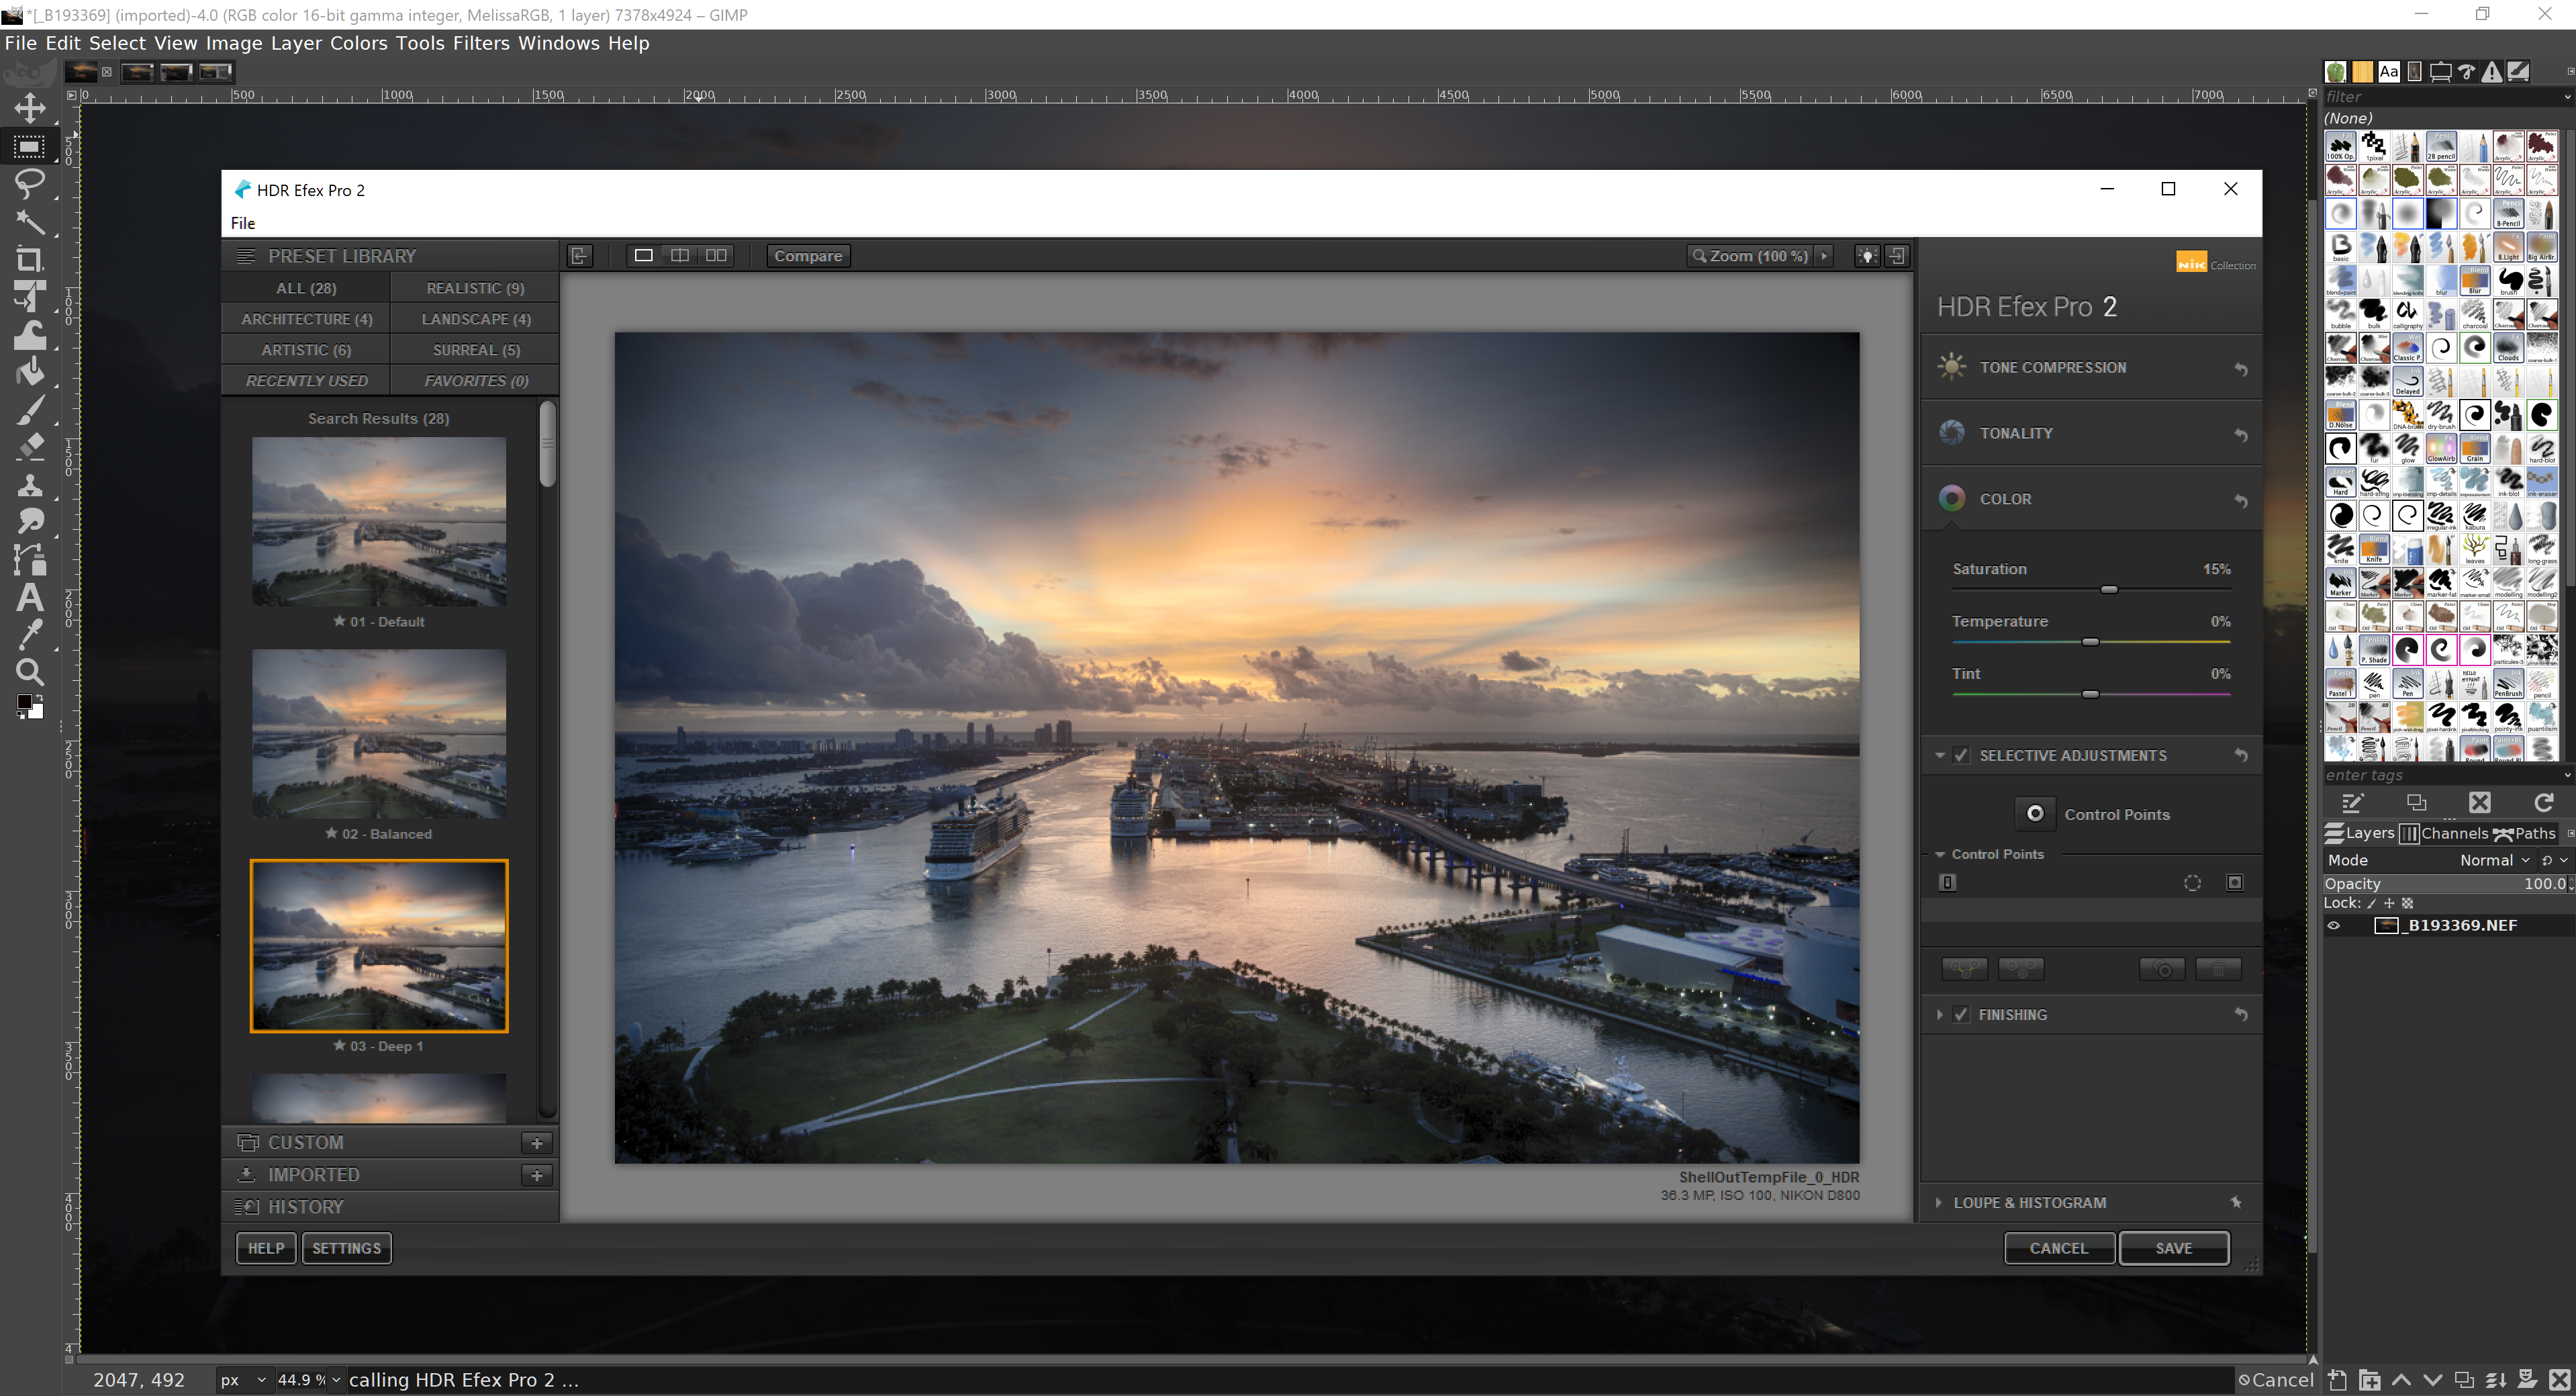 GIMP 2.10.18 with Nik Collection HDR